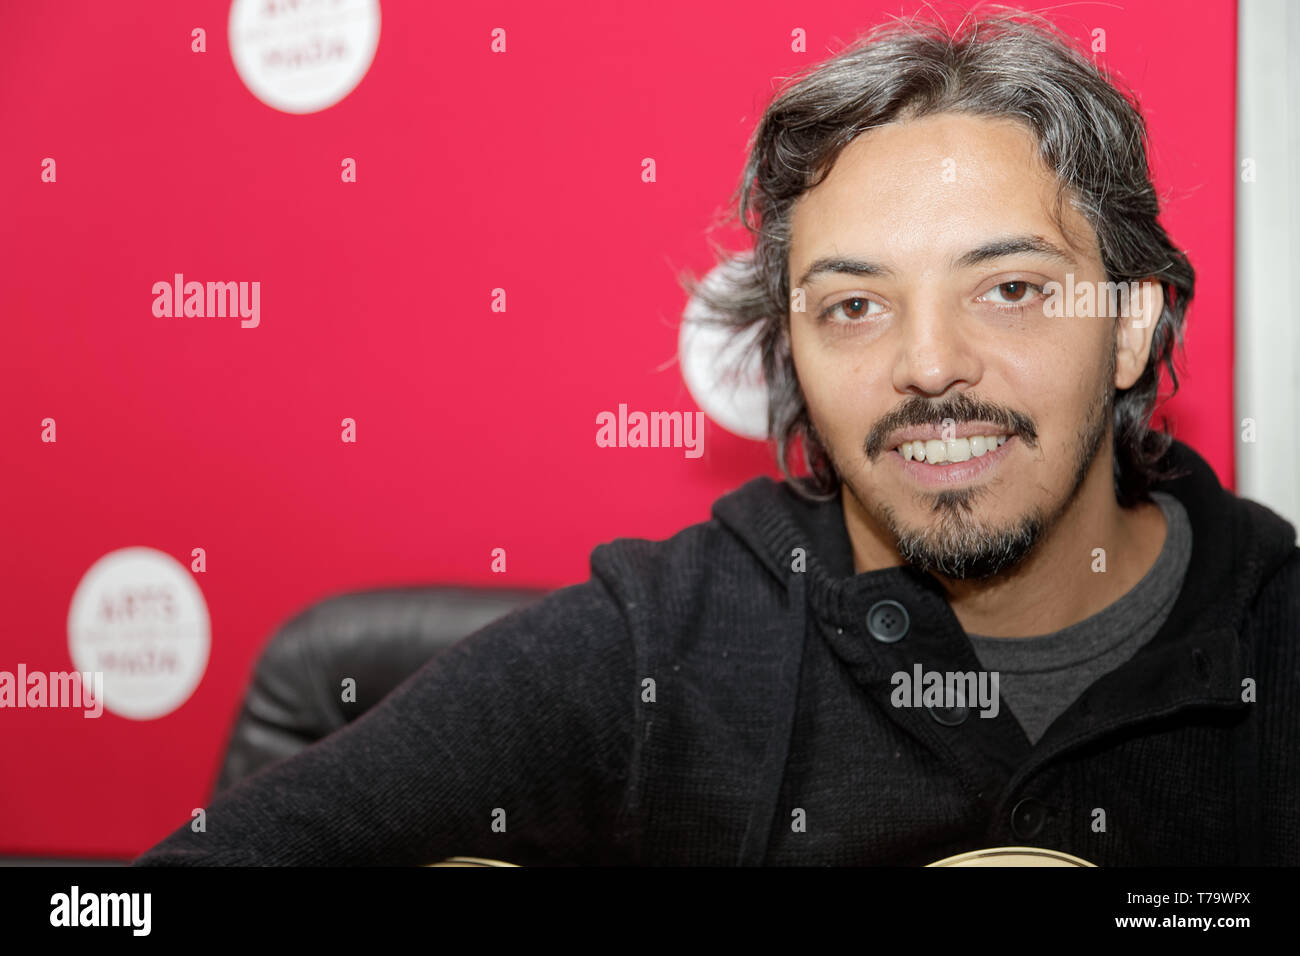 Villejuif, France. 31th Jan 2019. Yako attends Jairo's Positives Micro-Ondes show at Arts-Mada.Credit:Veronique Phitoussi/Alamy Stock Photo - Stock Image